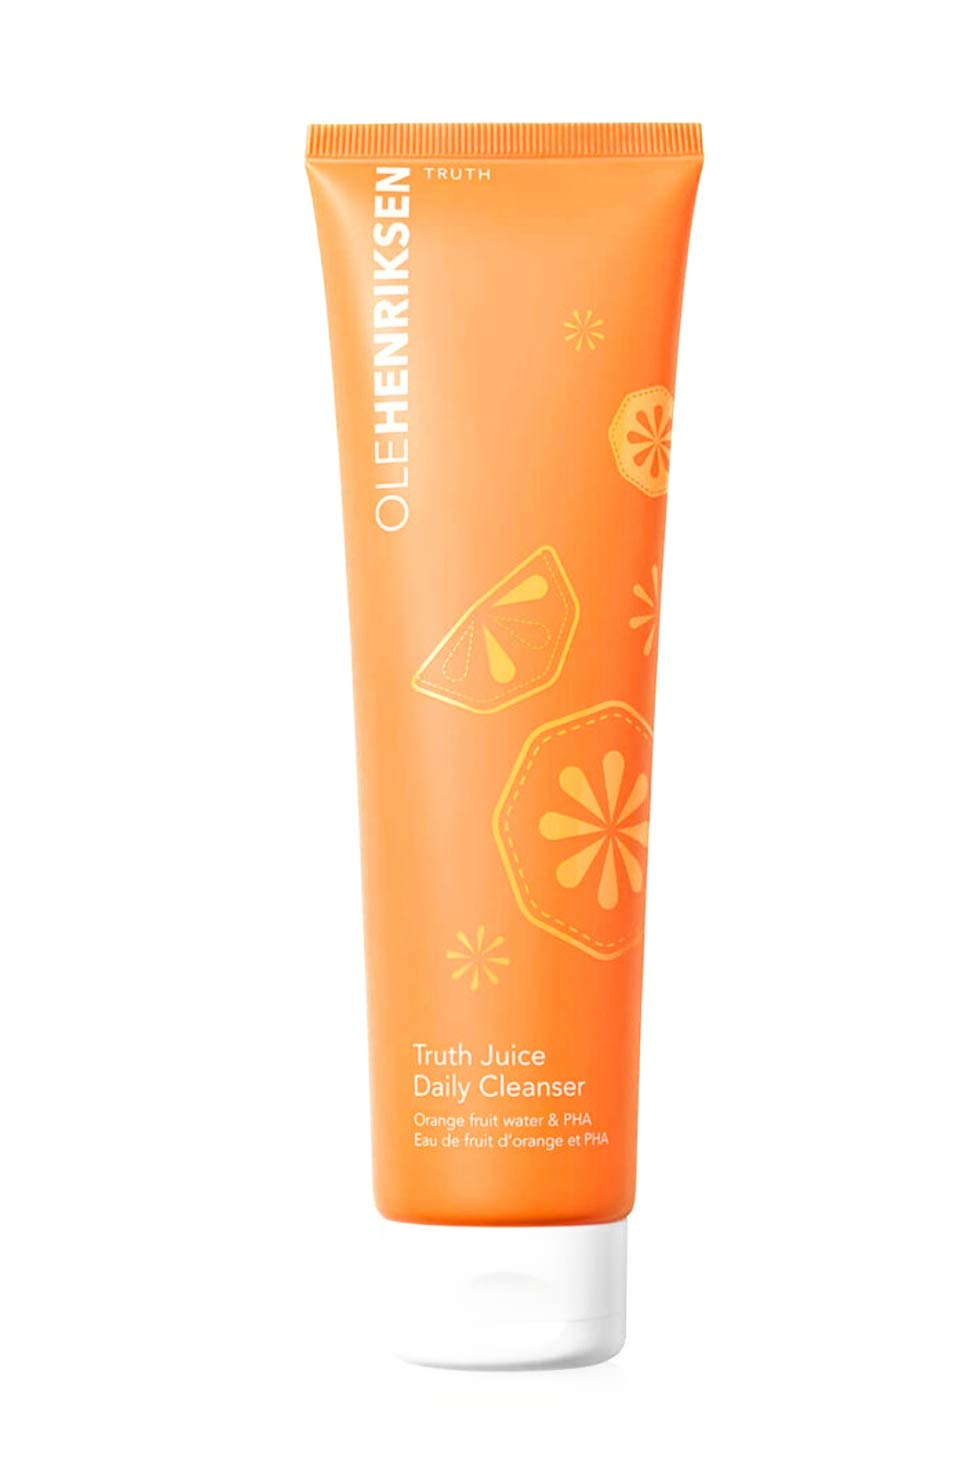 (PREORDER) Ole Henriksen Truth Juice Daily Cleanser